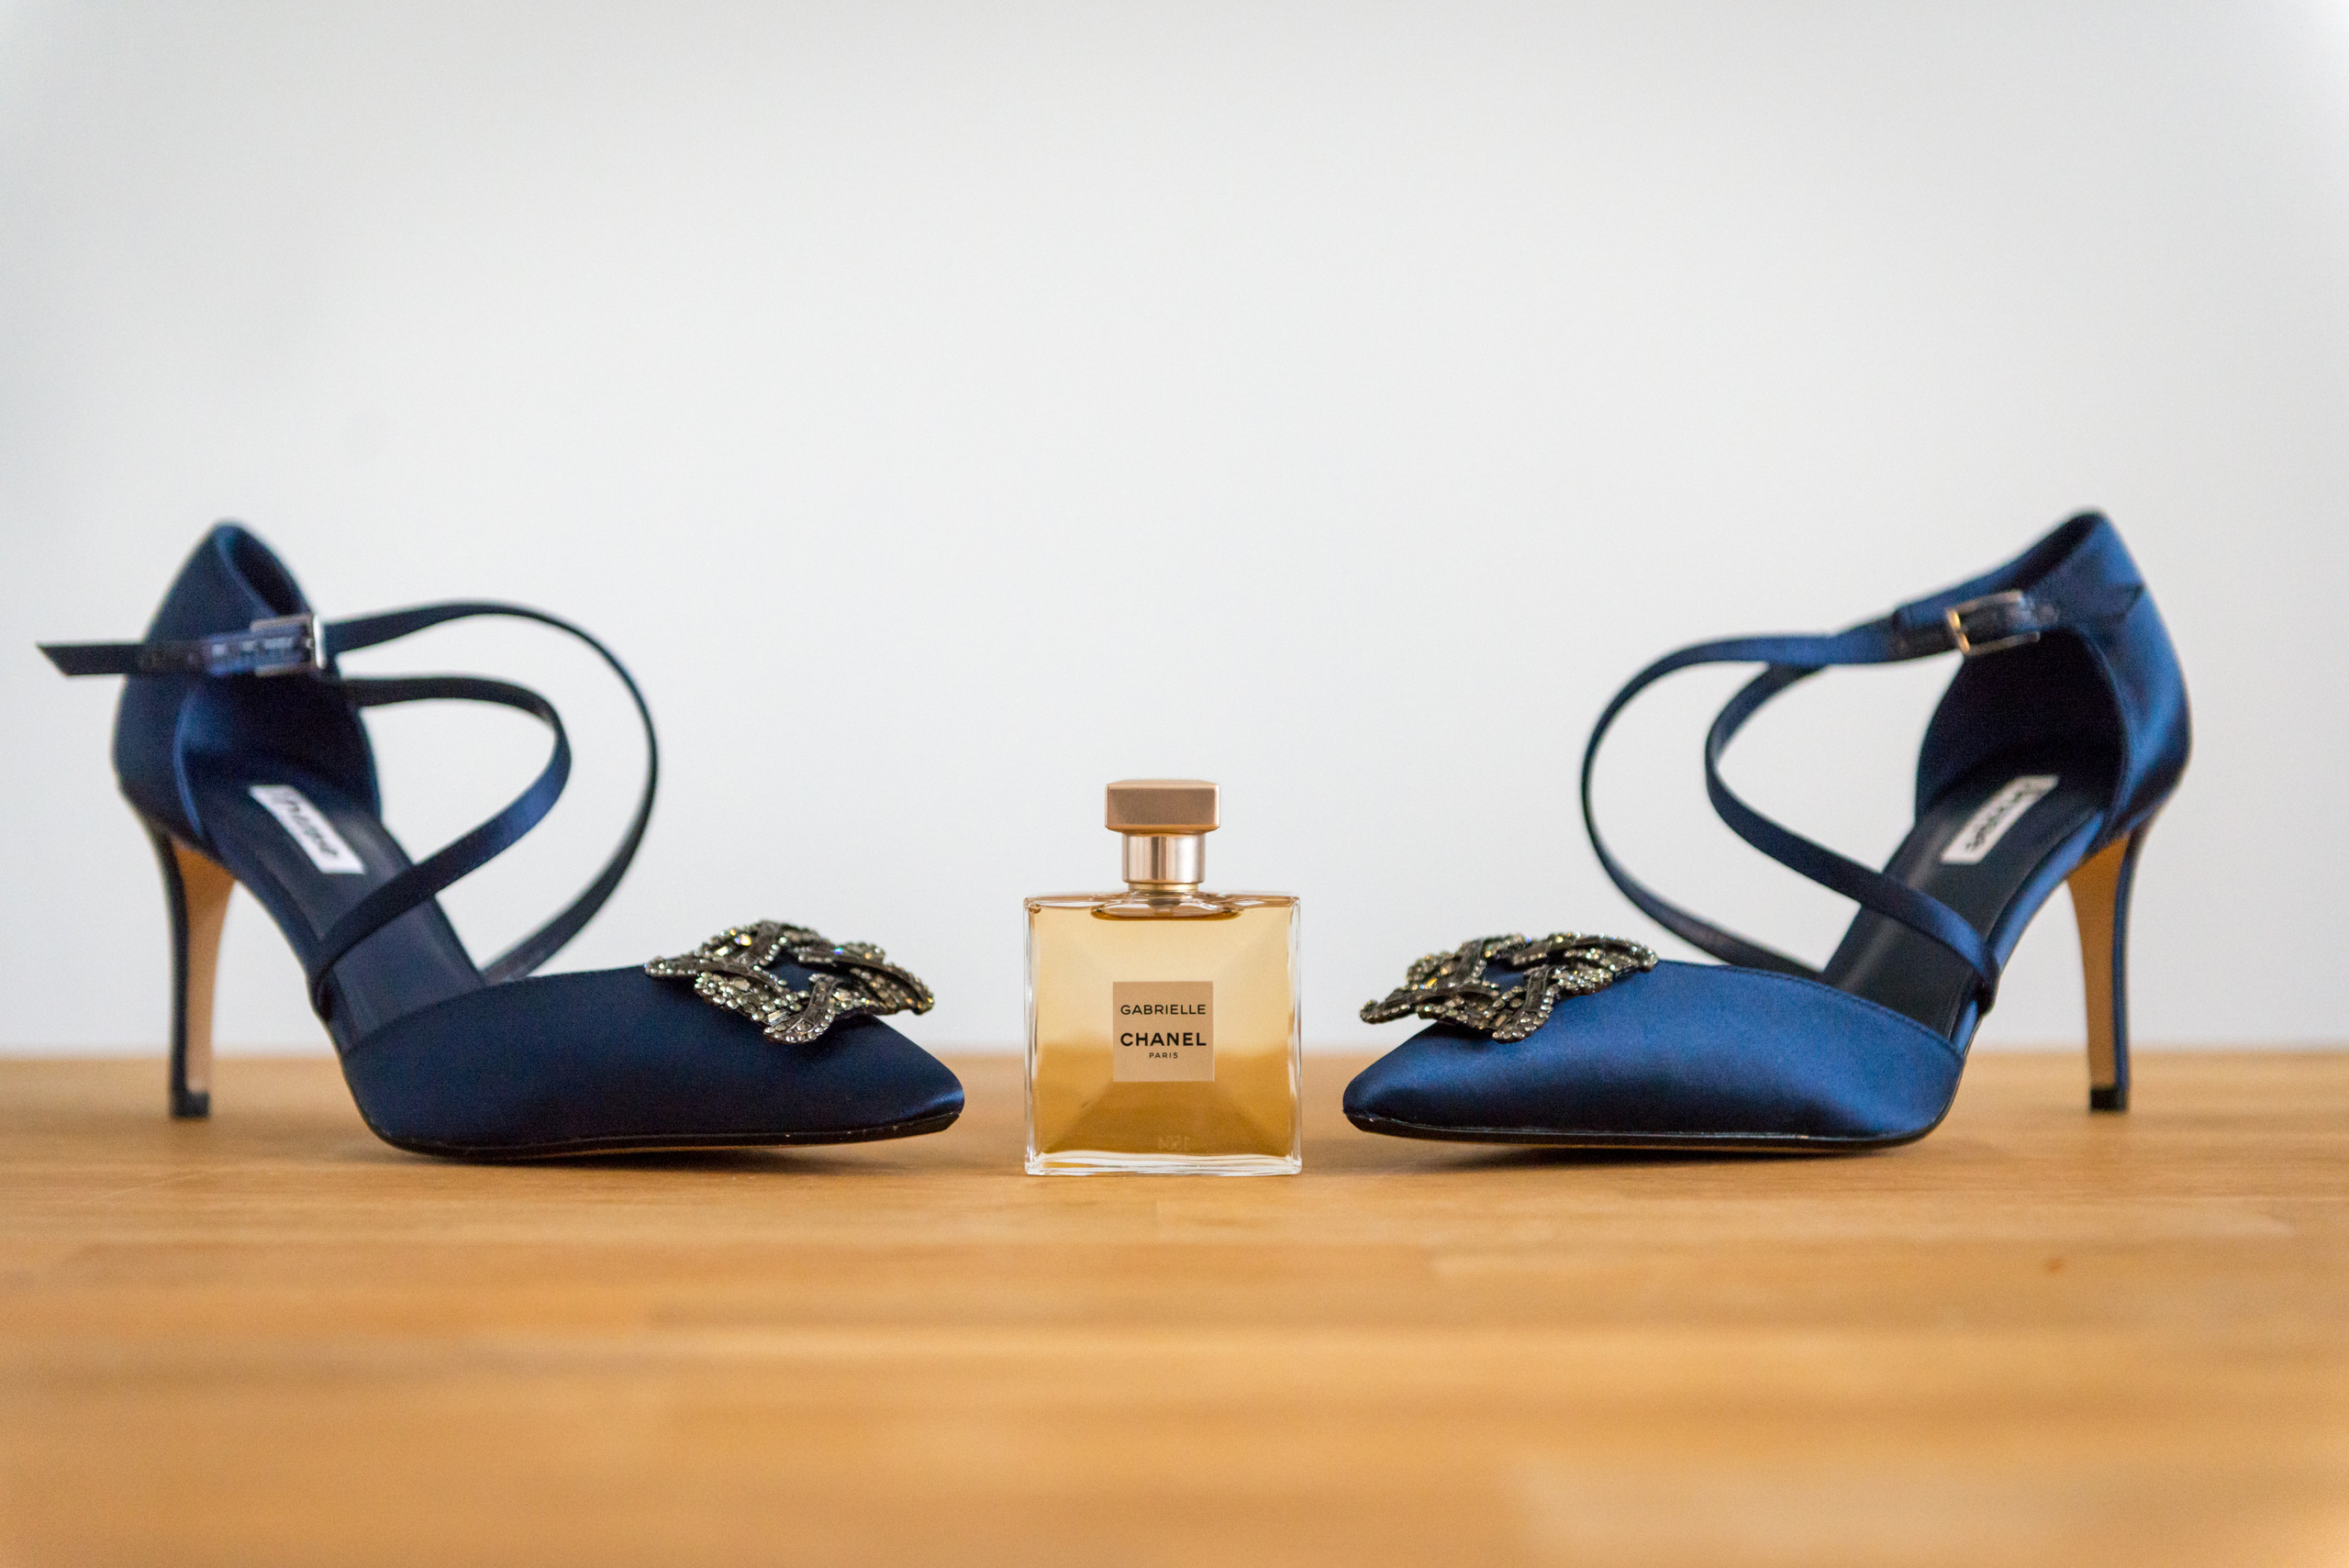 Photograph of Chanel Gabrielle perfume bottle and bride's blue high heel shoes on wedding day